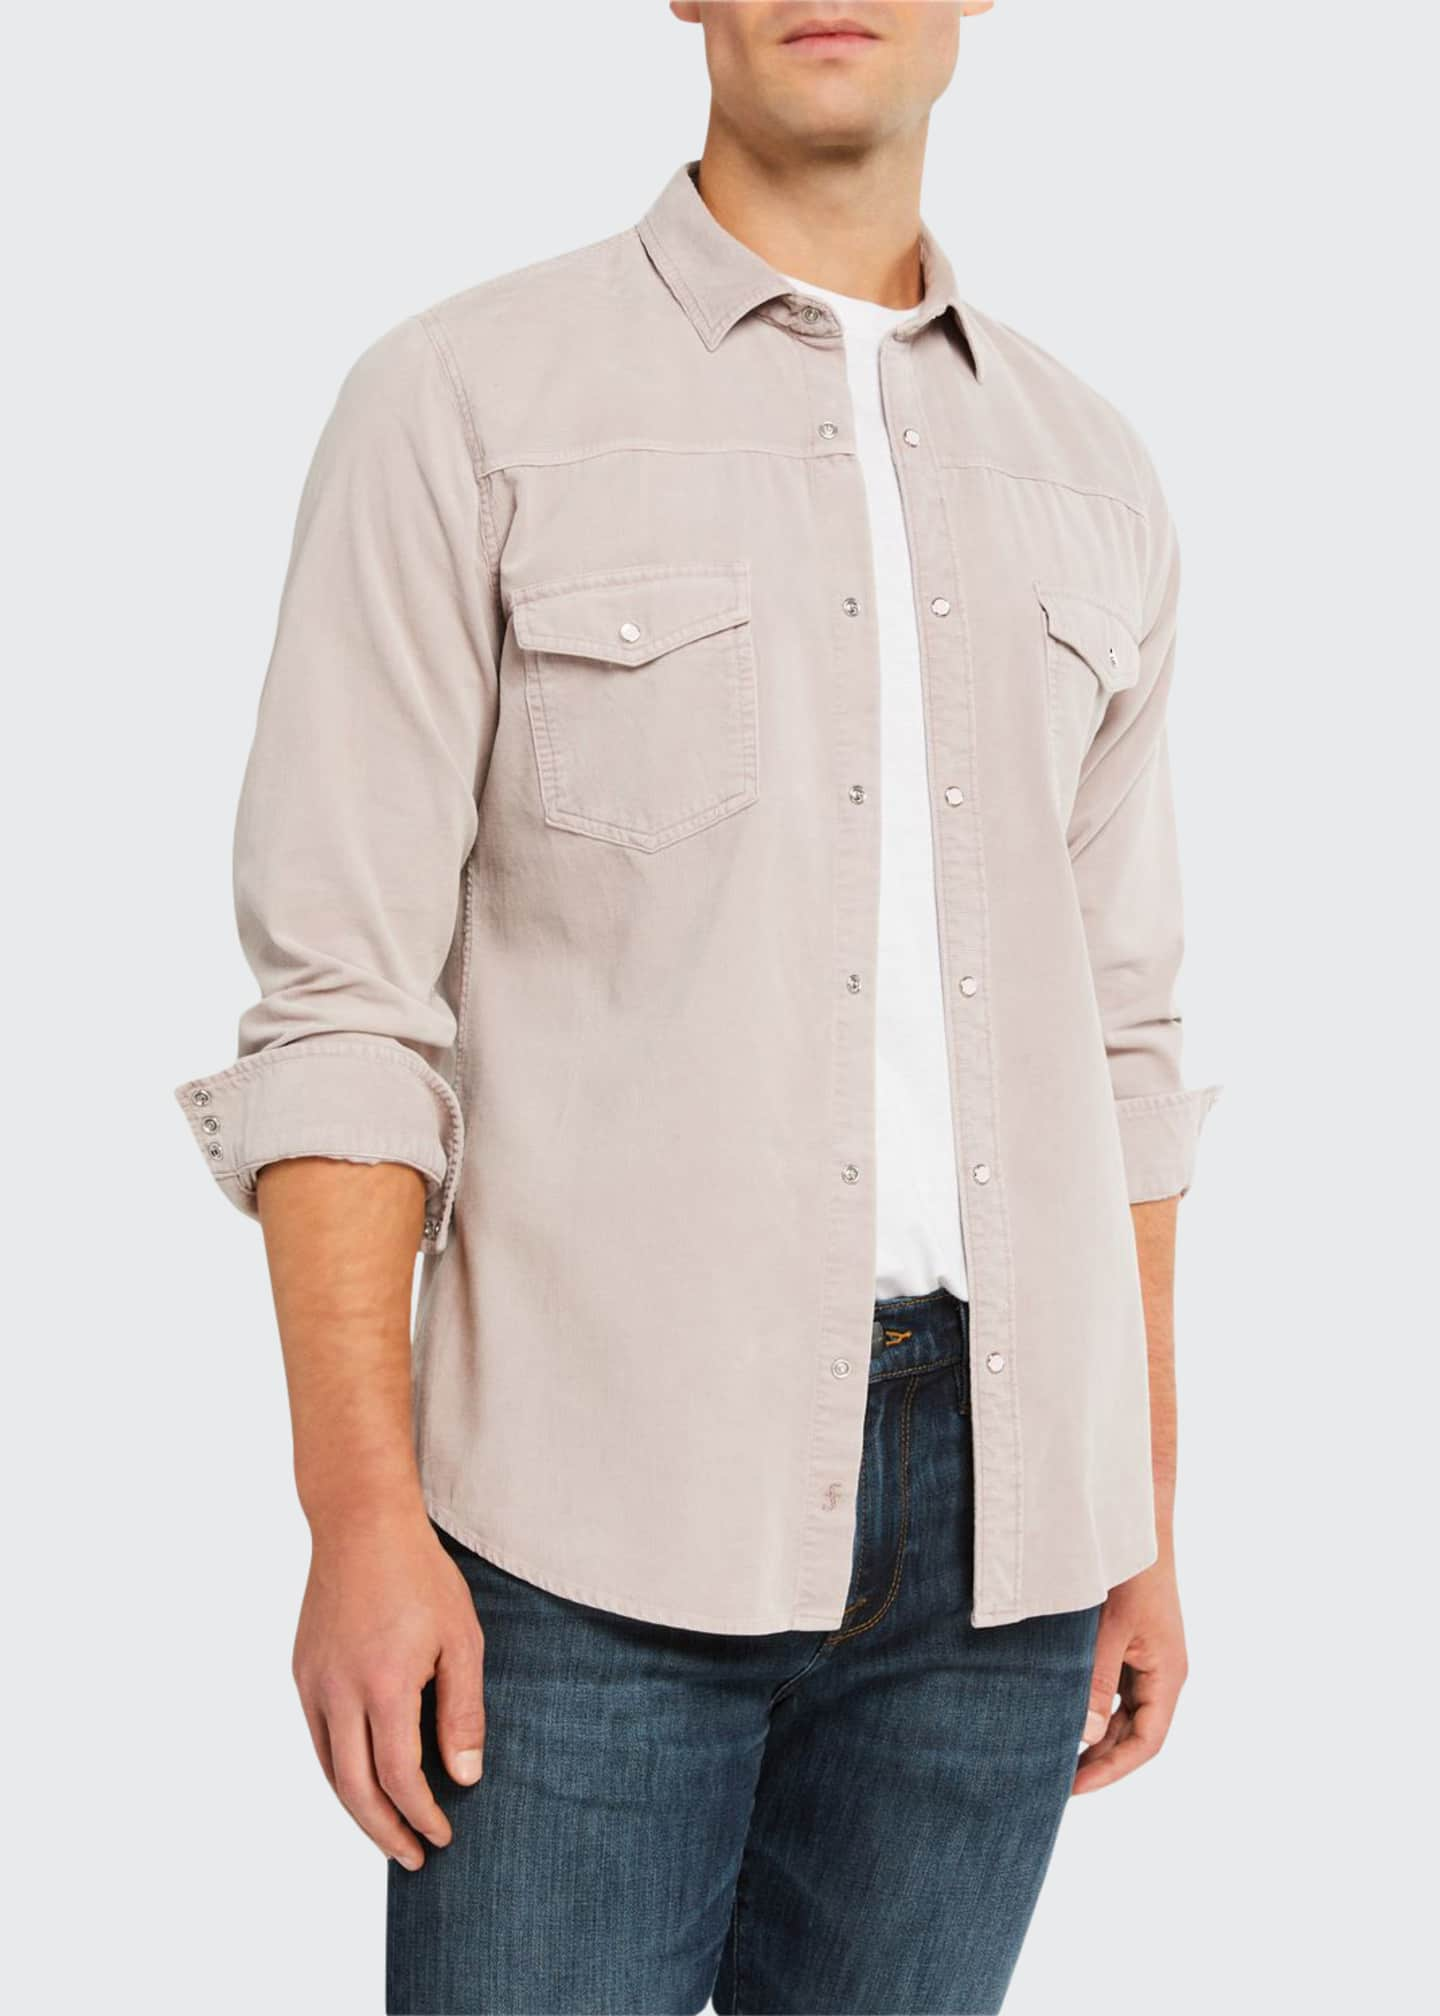 FRAME Men's Slim-Fit Corduroy Western Sport Shirt